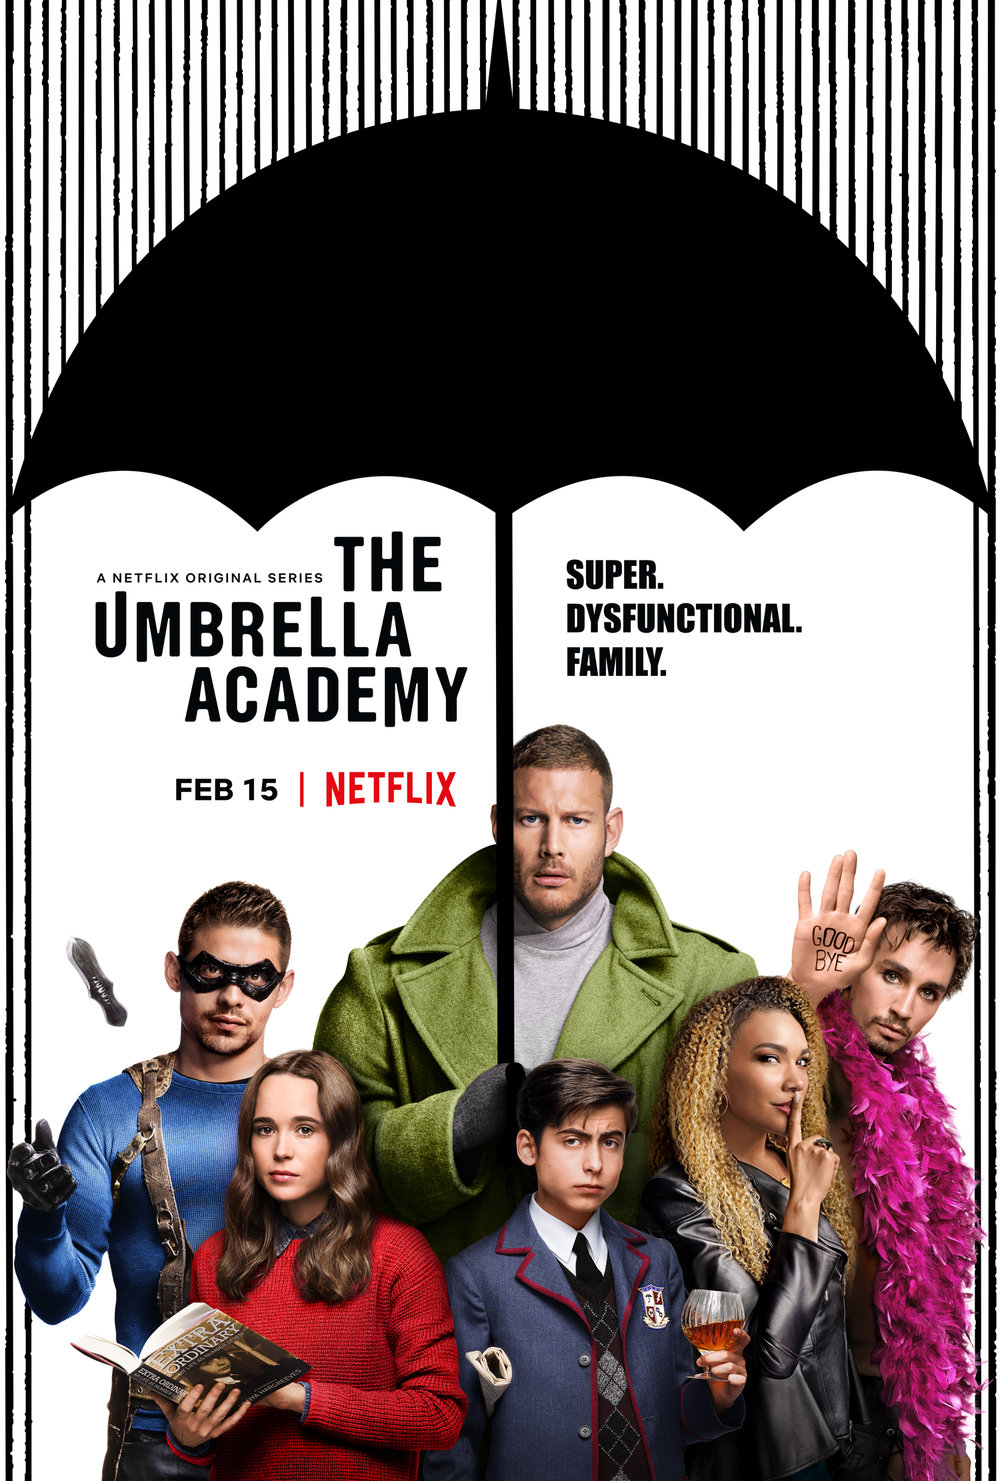 "The Umbrella Academy - By Sonia AvilesNetflix's new series The Umbrella Academy is a whole lot of fun and kept me on the edge guessing the plot of this show so far. The first episode starts off a bit cute then turns to a whole lot of weird and it left me with lots of questions. To put it simply, on the first of October in the year 1989, 43 women around the world gave birth, however these women were not pregnant on the beginning of that specific day. Let that sink in.From there a strange older man by the name of Reginald Hargreeves (Colm Feore) sought out to adopt seven of these special children and raise them to be ""extraordinary"" superheroes. Simple premise, right? No. It gets a bit more intricate than that as the episodes unravel bits and pieces of a bigger puzzle.The first episode meets only six of the seven heroes that come together for their father's funeral: Luther (Tom Hopper), Diego (David Castaneda), Allison (Emmy Raver-Lampman), Klaus (Robert Sheehan), Vanya (Ellen Page), and ""Number 5"" (Aidan Gallagher). While they are at their family home, they discover something is off about the way their father died, which introduces the audience to the plot. However, what is strange is the focus on their father's missing manacle, which apparently, he never left behind. Their ""mother"" seems to be a malfunctioning robot, and ""Number 5"" came back out of seemingly from the future where everyone in the world is dead. From that point onward, it is one strange ordeal after another, that somehow connects. This also a talking and very intelligent monkey who is now in charge of their home, which I found intriguing and delightful. Planet of the Apes, anyone?All jokes aside, not only are these ordeals strange, but somehow it feels like the show is trying to feed me clues to keep note for future episodes. Or at the very least keep me guessing.Which brings me to my next point; the atmosphere. I want to really emphasize that the atmosphere of this show isn't the typical ""superheroes saving humanity"". This show is gritty, dramatic, and strangely comical. The creators of this show creatively strip down the cliché superhero stigma and gives each of these characters realistic human strengths and flaws, while revealing bits of the story one episode at a time, keeping me hooked from episode one.I found myself trying to figure out the plot, all the while watching a dysfunctional family trying to come together. However, instead of acting like a family, they are all estranged and almost self-absorbed in their own way. Which is okay in my book because it adds to the drama and creates potential for character growth.However, this show isn't all drama. In fact it aims for that perfect combination of comedy, drama, and action, and let me tell you, some of these characters are sparky and comical. Characters like Klaus and Number 5 will have you smiling, giggling, and shaking your head all at once. While other characters like Vanya will tug at your heart strings and make you feel for her. Although to be fair, Ellen Page easily does that with any role she plays.Lastly, the action. The action in this show is not immediate, nor is it overdone with CGI or fast-moving shots. The action really starts taking place in episode three and onwards. While it is not over done, by no means is it not absolutely attention grabbing and exciting without being over exaggerated with superpowers or guns a blazing for five minutes straight.Drama? Check. Comedy? Check. Action? Check.Refreshingly new? Check.This is specifically a Netflix series with ten episodes, each about an hour long, and is honestly one of those series that can be a hit or miss for most but must be given a chance. You'll know when you stumbled on a good show when it baits you to continue episode after episode and this is exactly what The Umbrella Academy does best.Cast: Ellen Page, Tom Hopper, David Castaneda, Emmy Raver-Lampman, Robert Sheehan, Aidan Gallagher, Colm FeoreNetflix Series."